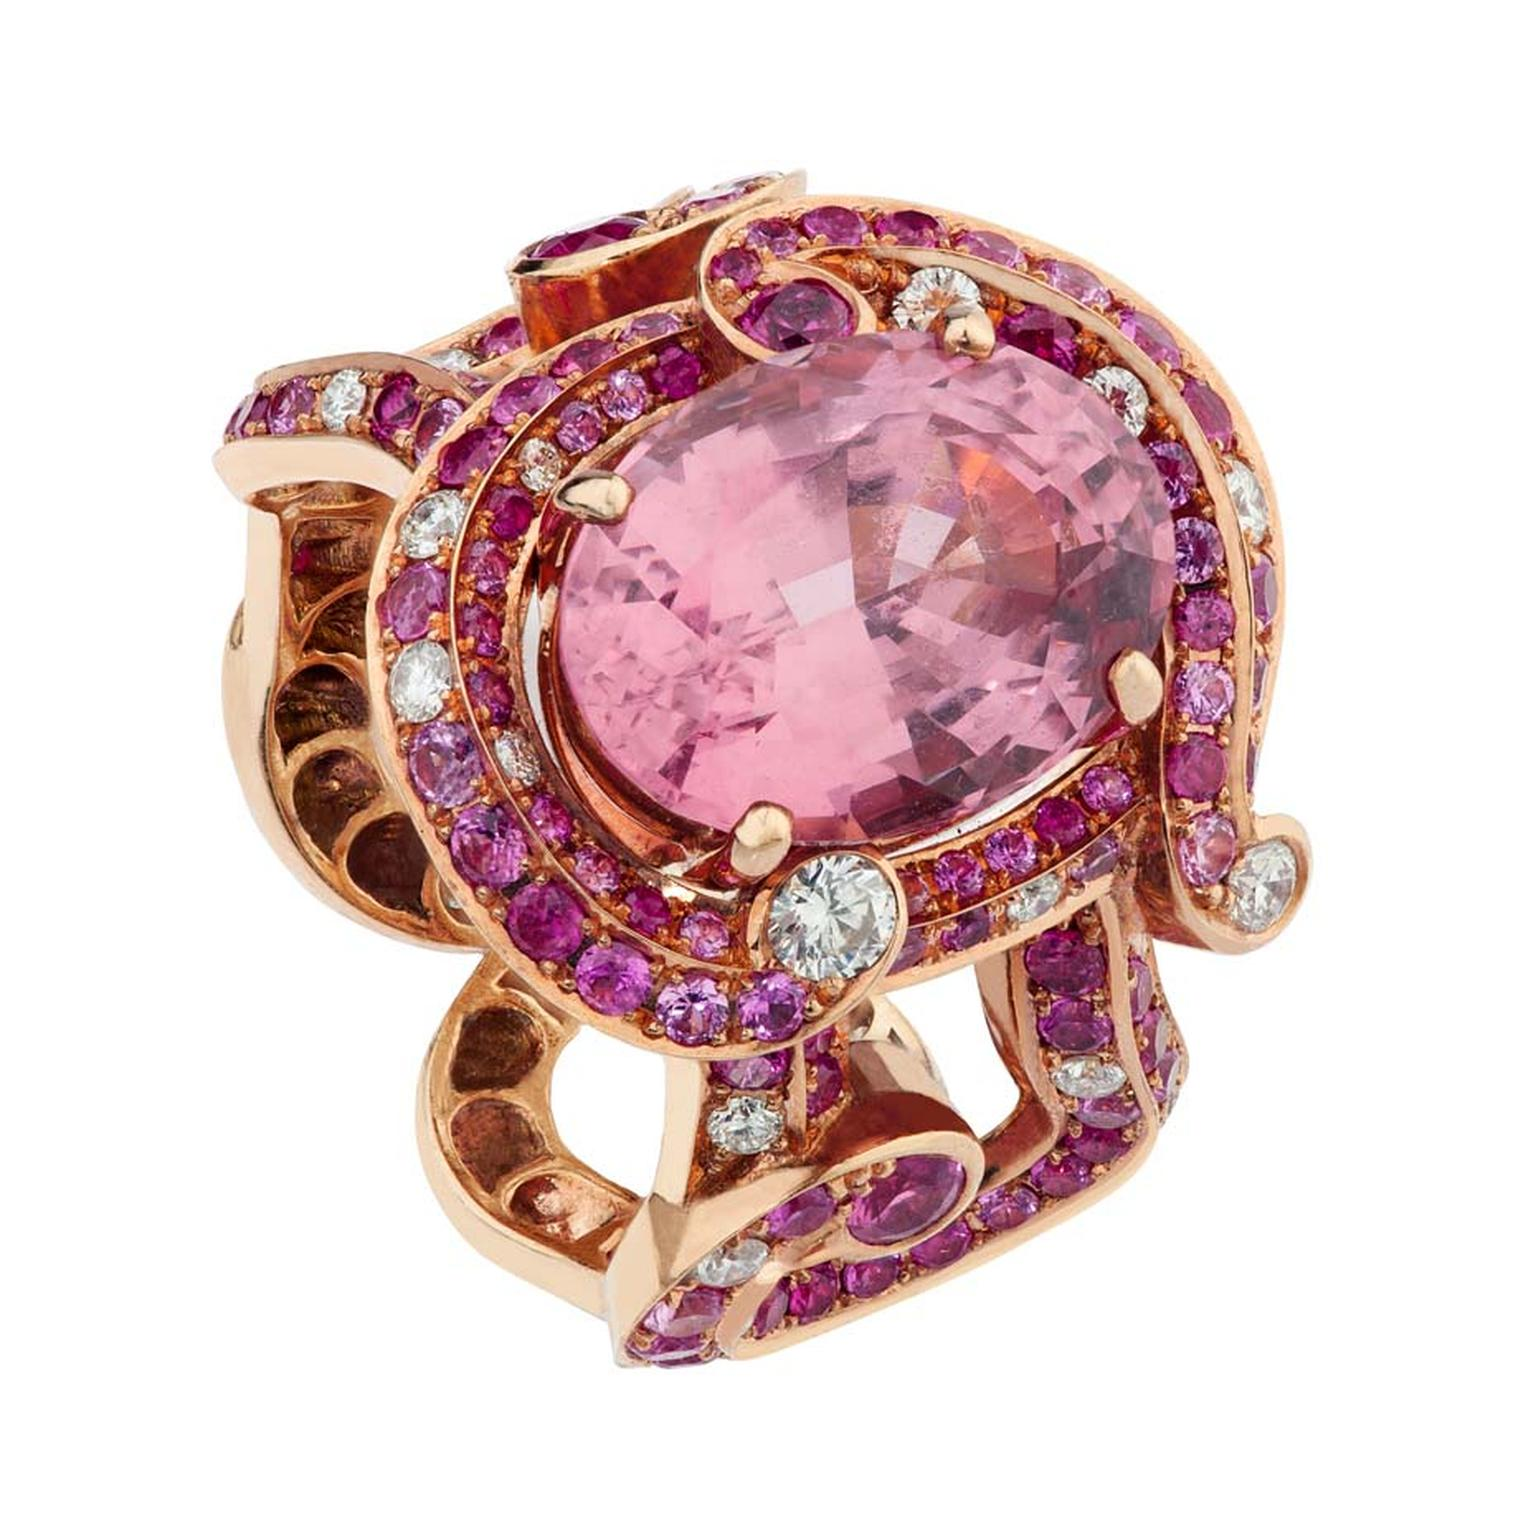 Fabergé Rococo pink spinel ring.